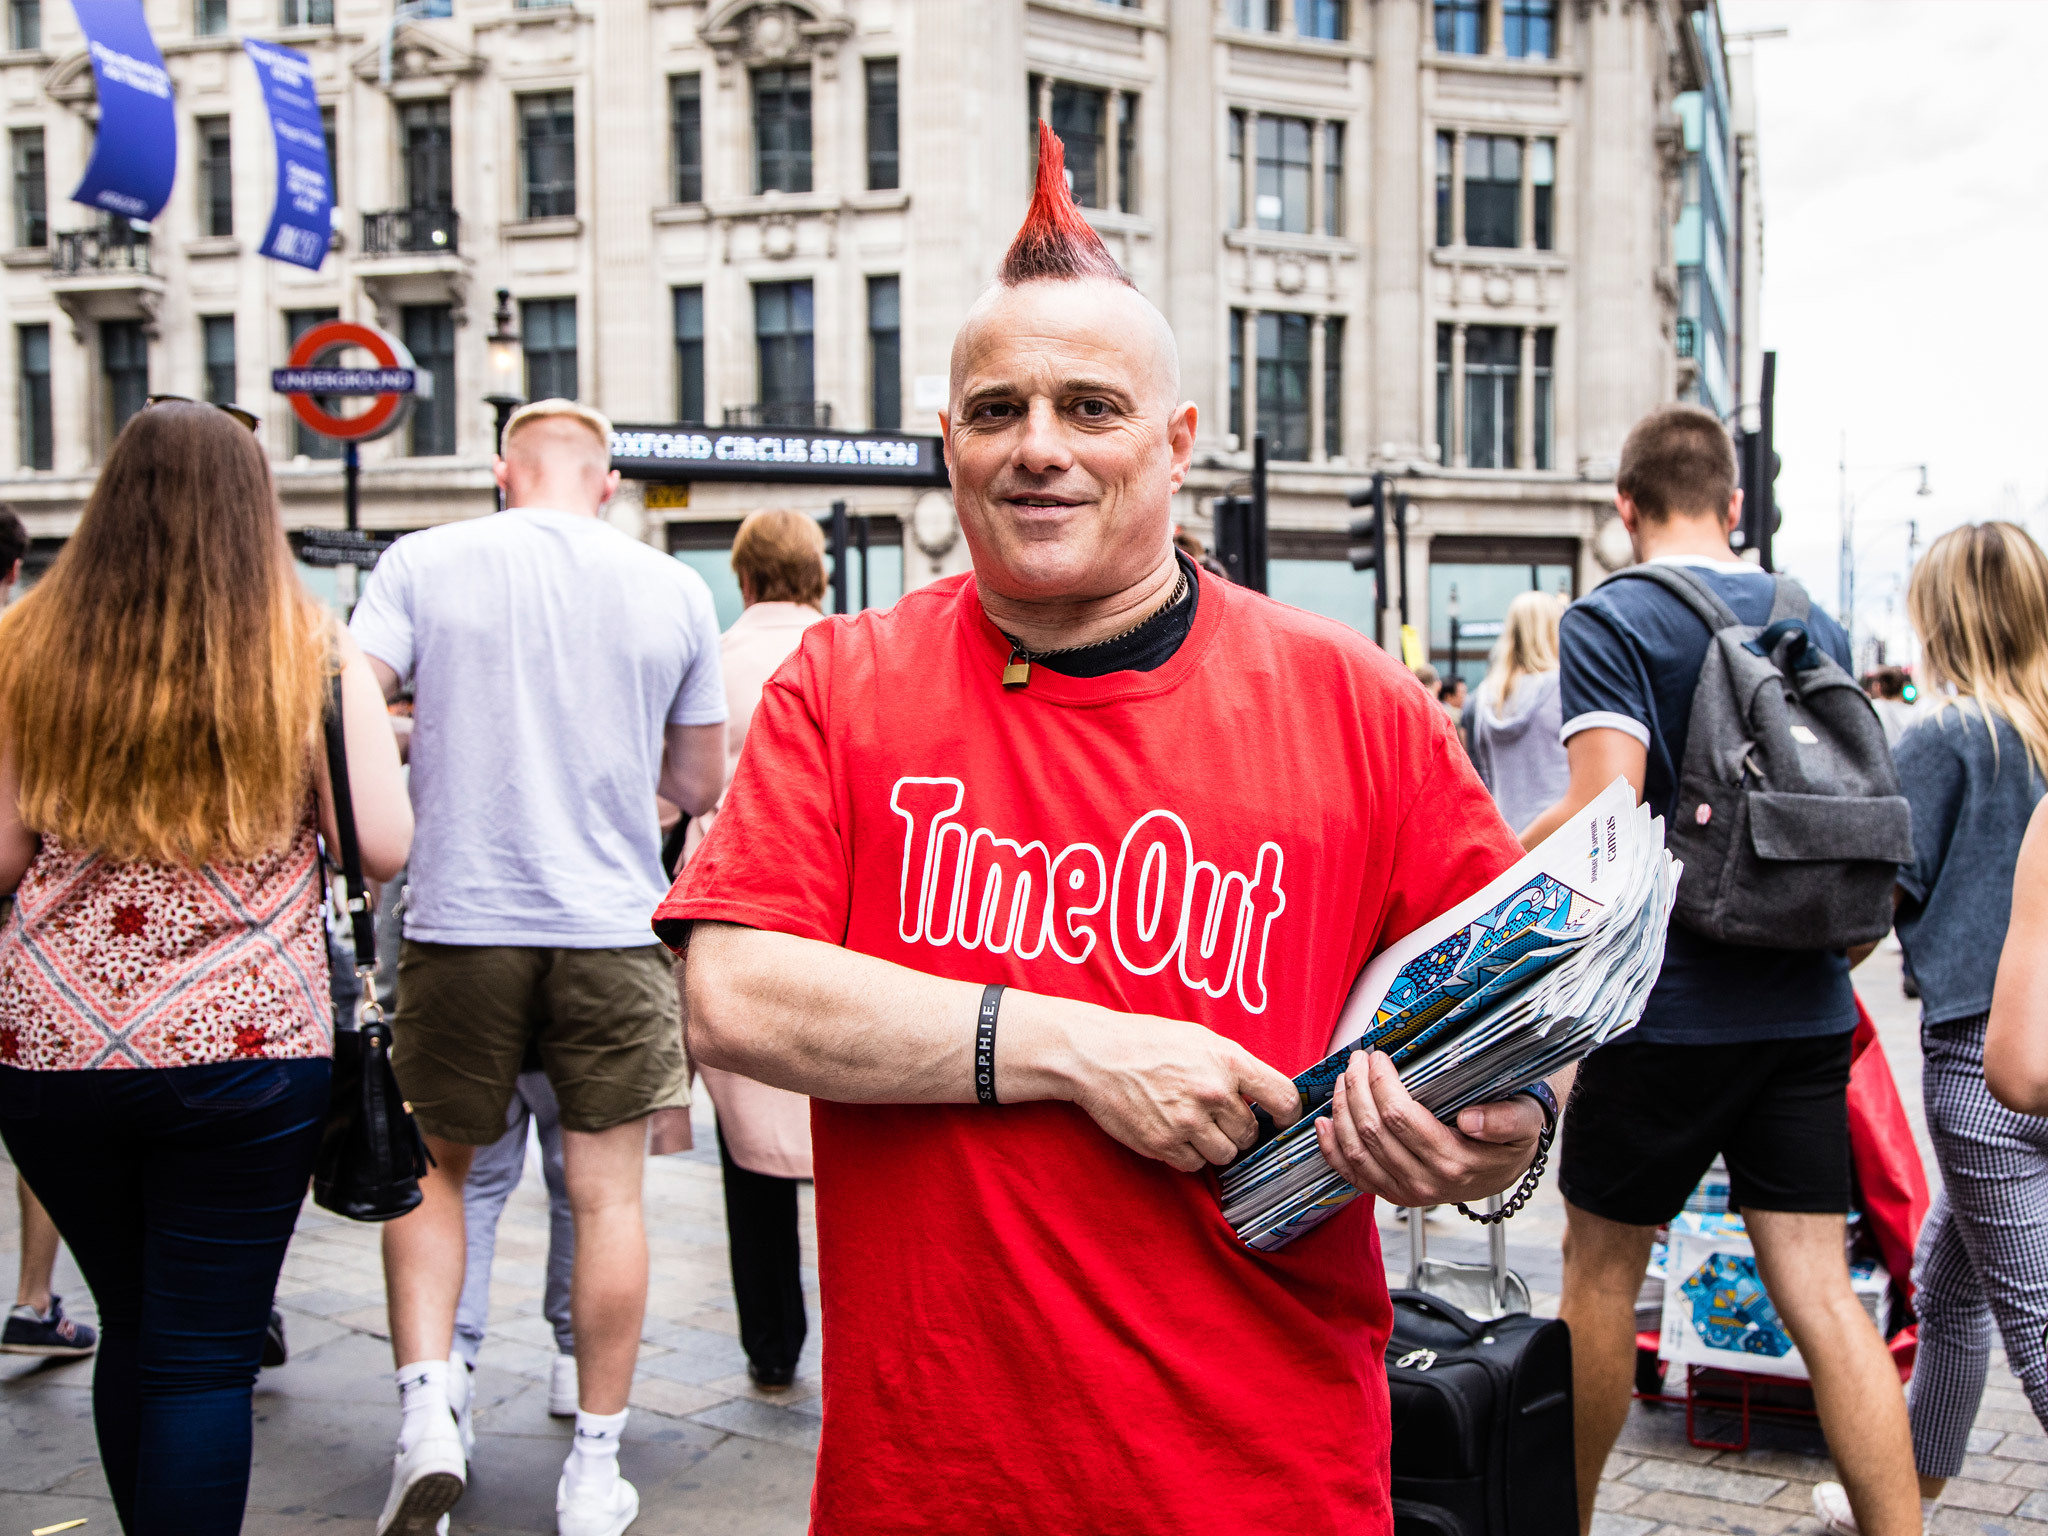 Meet the distributor: John at Oxford Circus